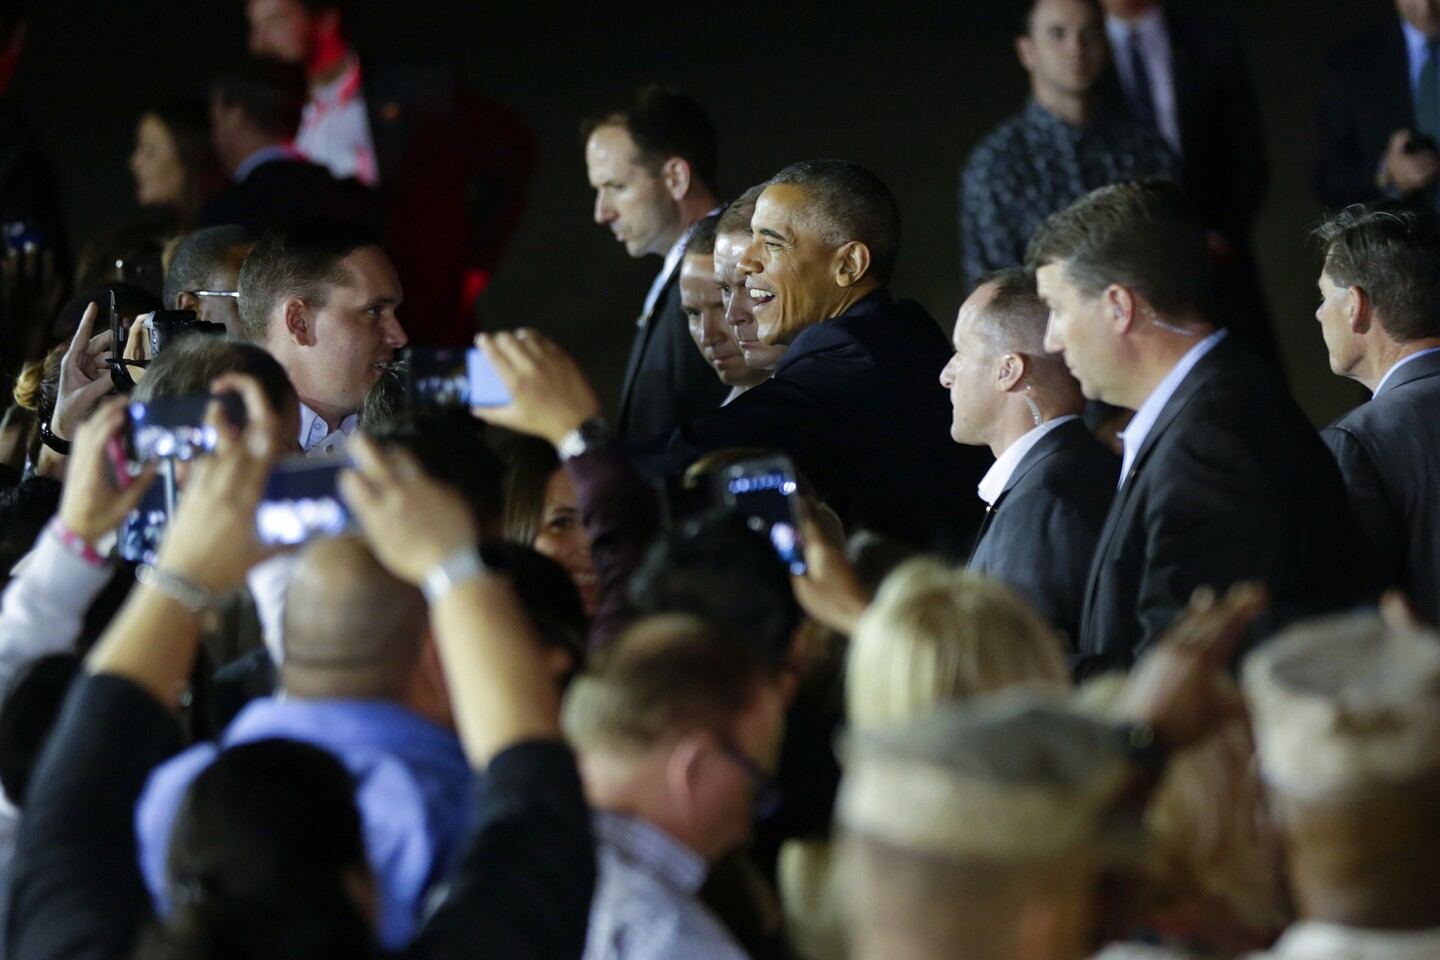 Flying in on Air Force One, President Barack Obama arrived at Marine Corps Air Station, Miramar Sunday evening. After landing President Barack Obama met briefly with supporters who came out Sunday evening.